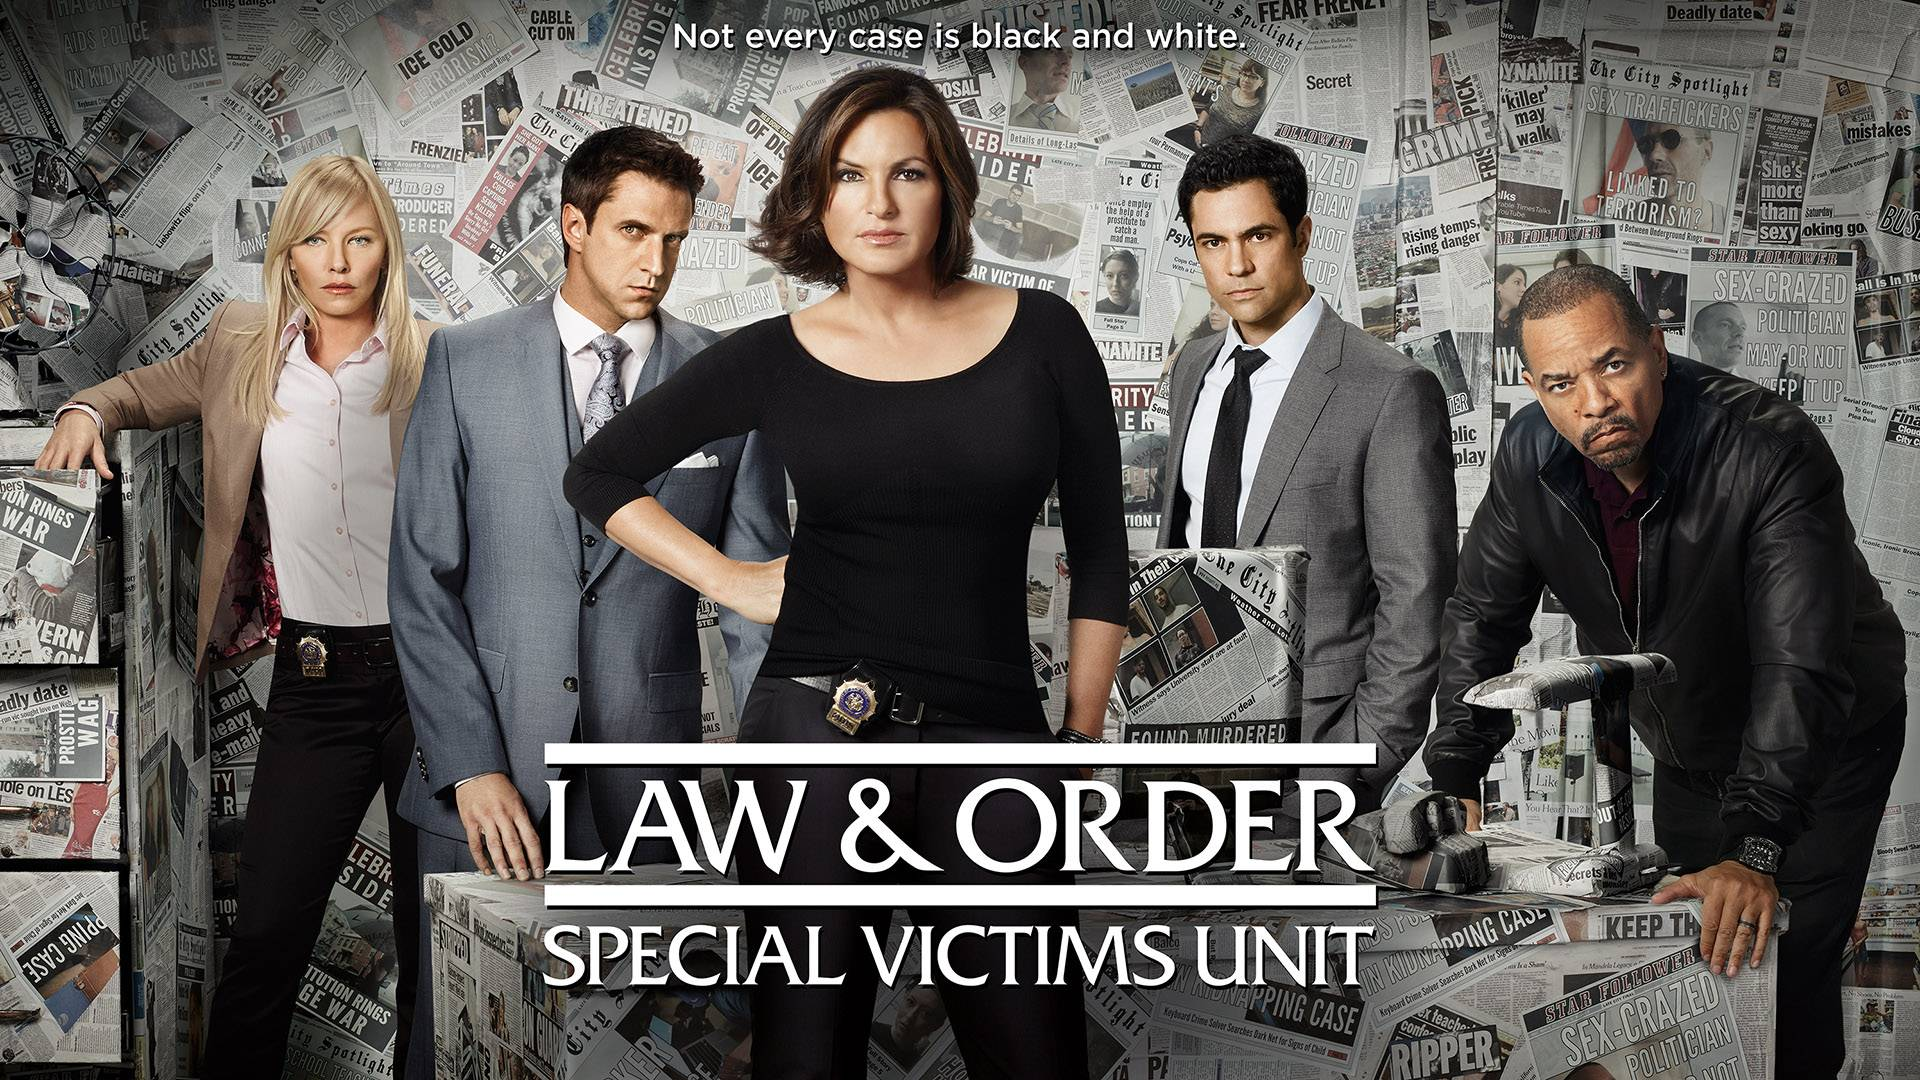 Law-and-Order-SVU-law-and-order-svu-37605466-1920-1080